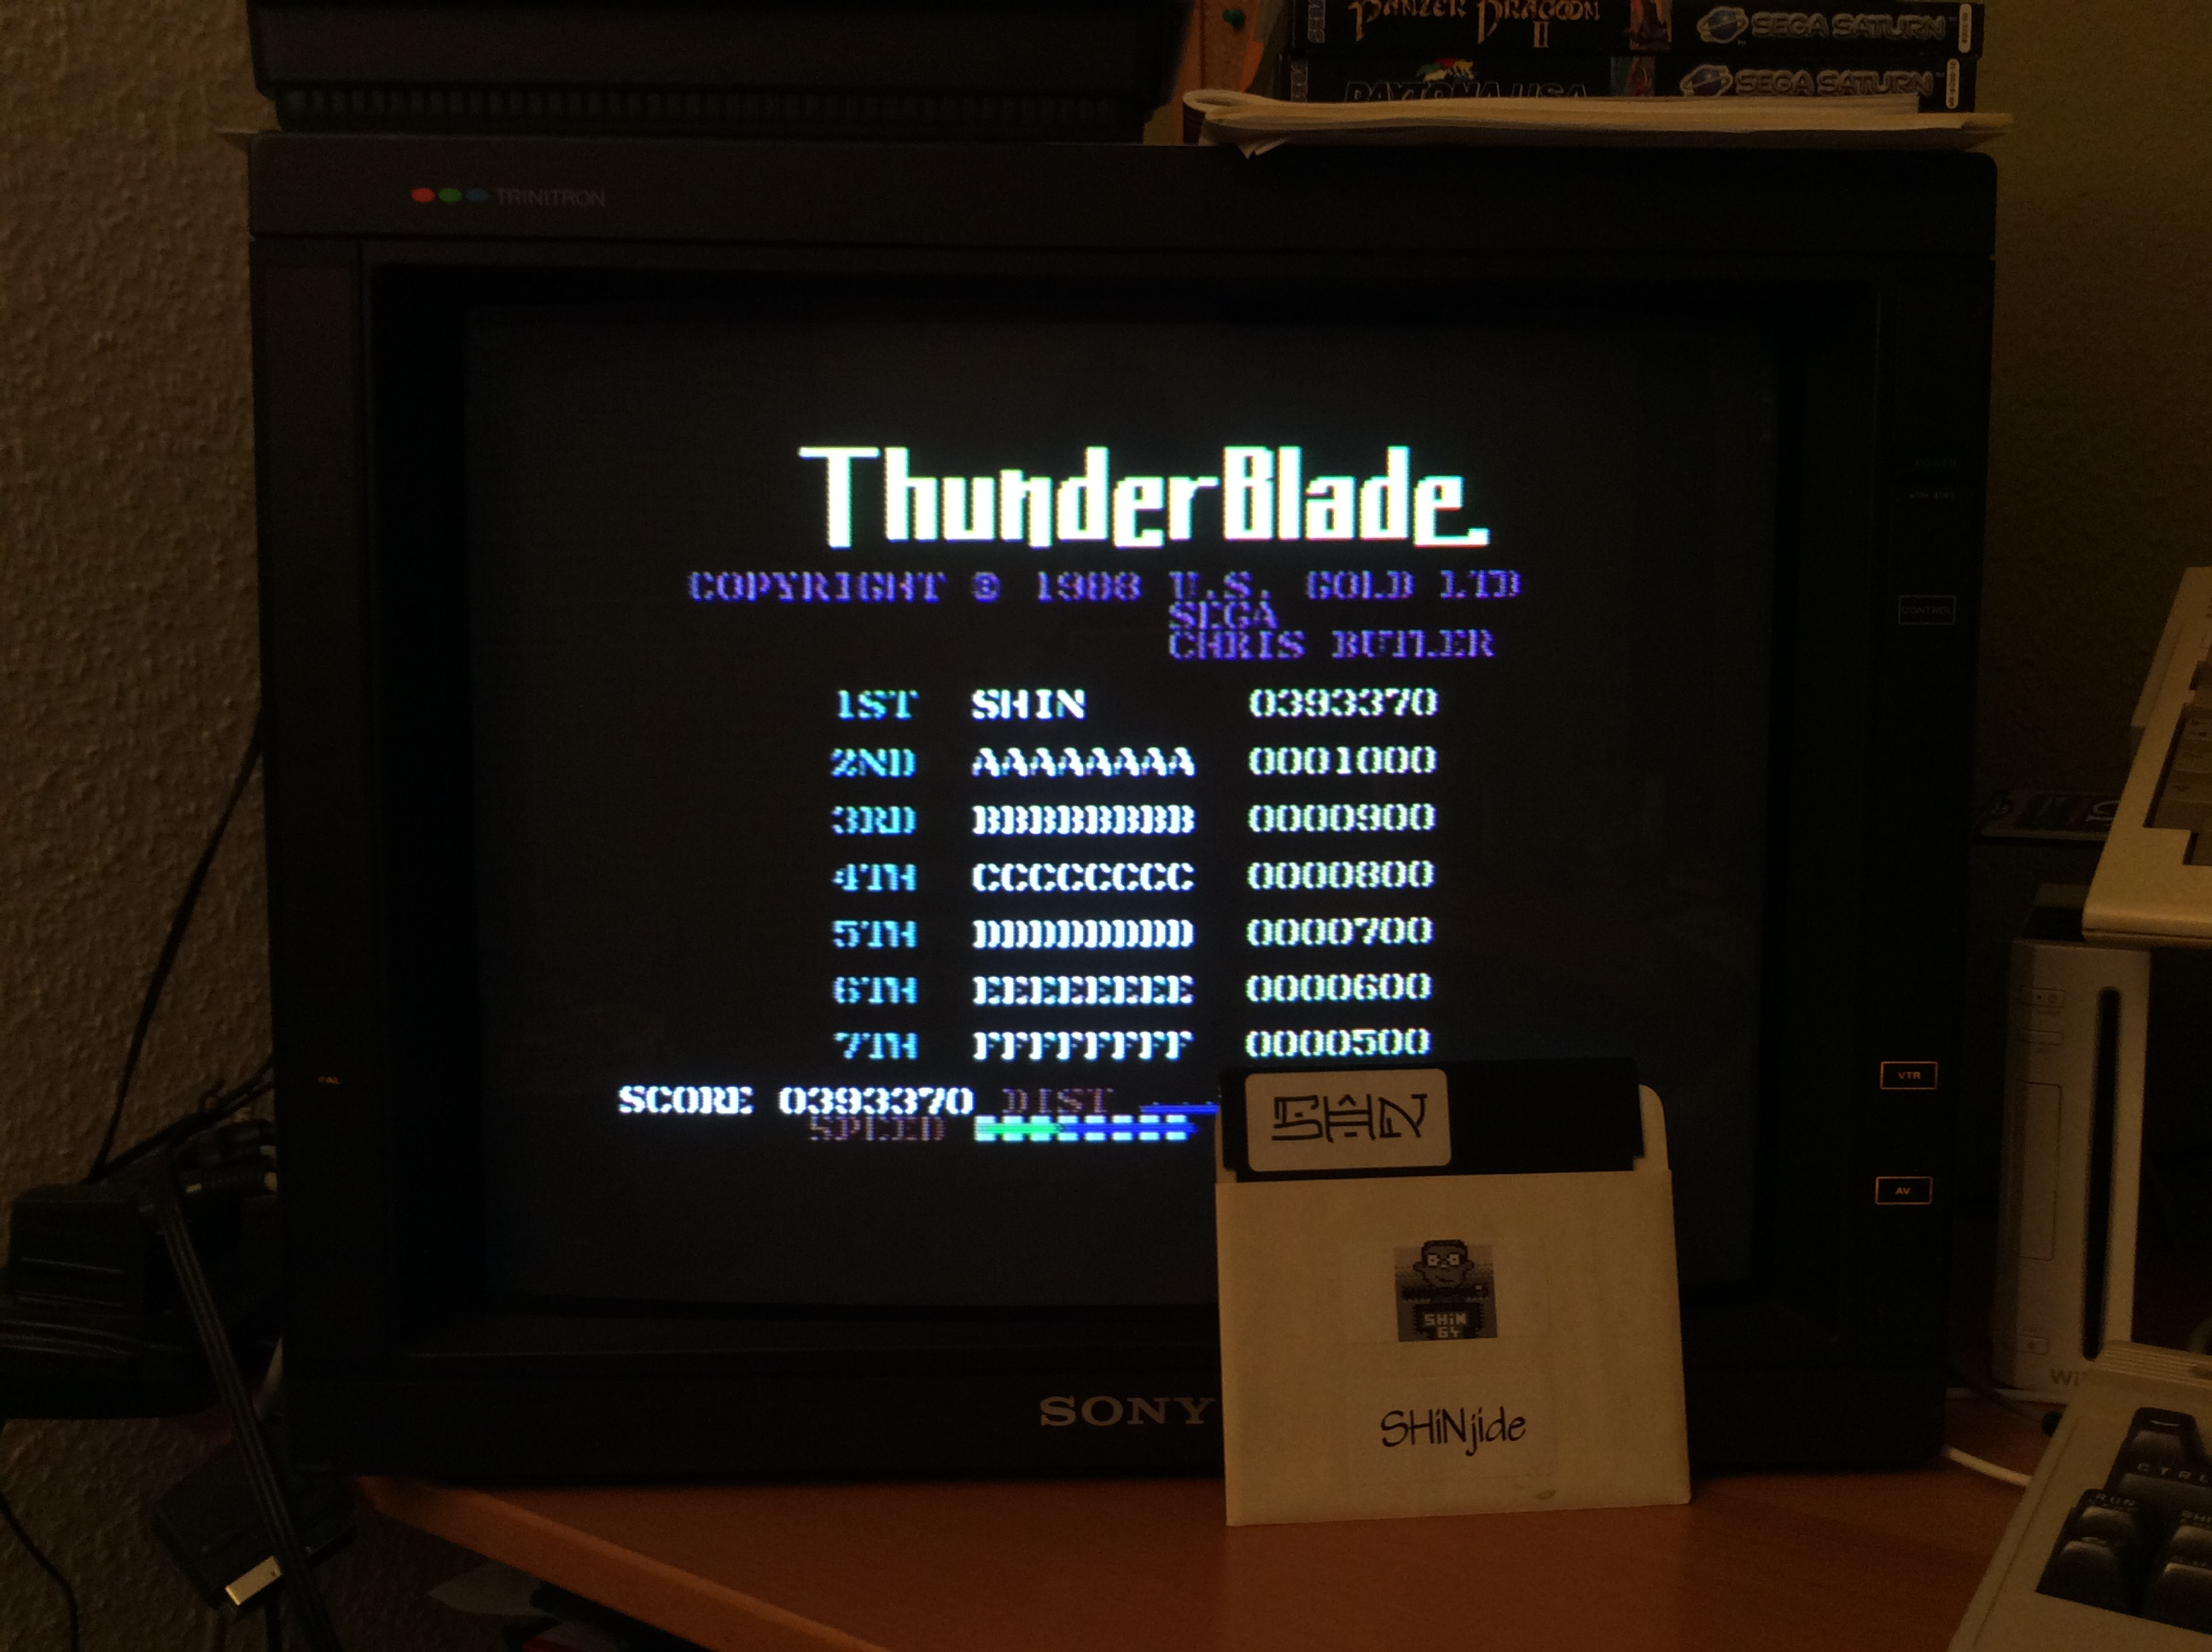 SHiNjide: Thunder Blade (Commodore 64) 393,370 points on 2015-01-11 04:21:05